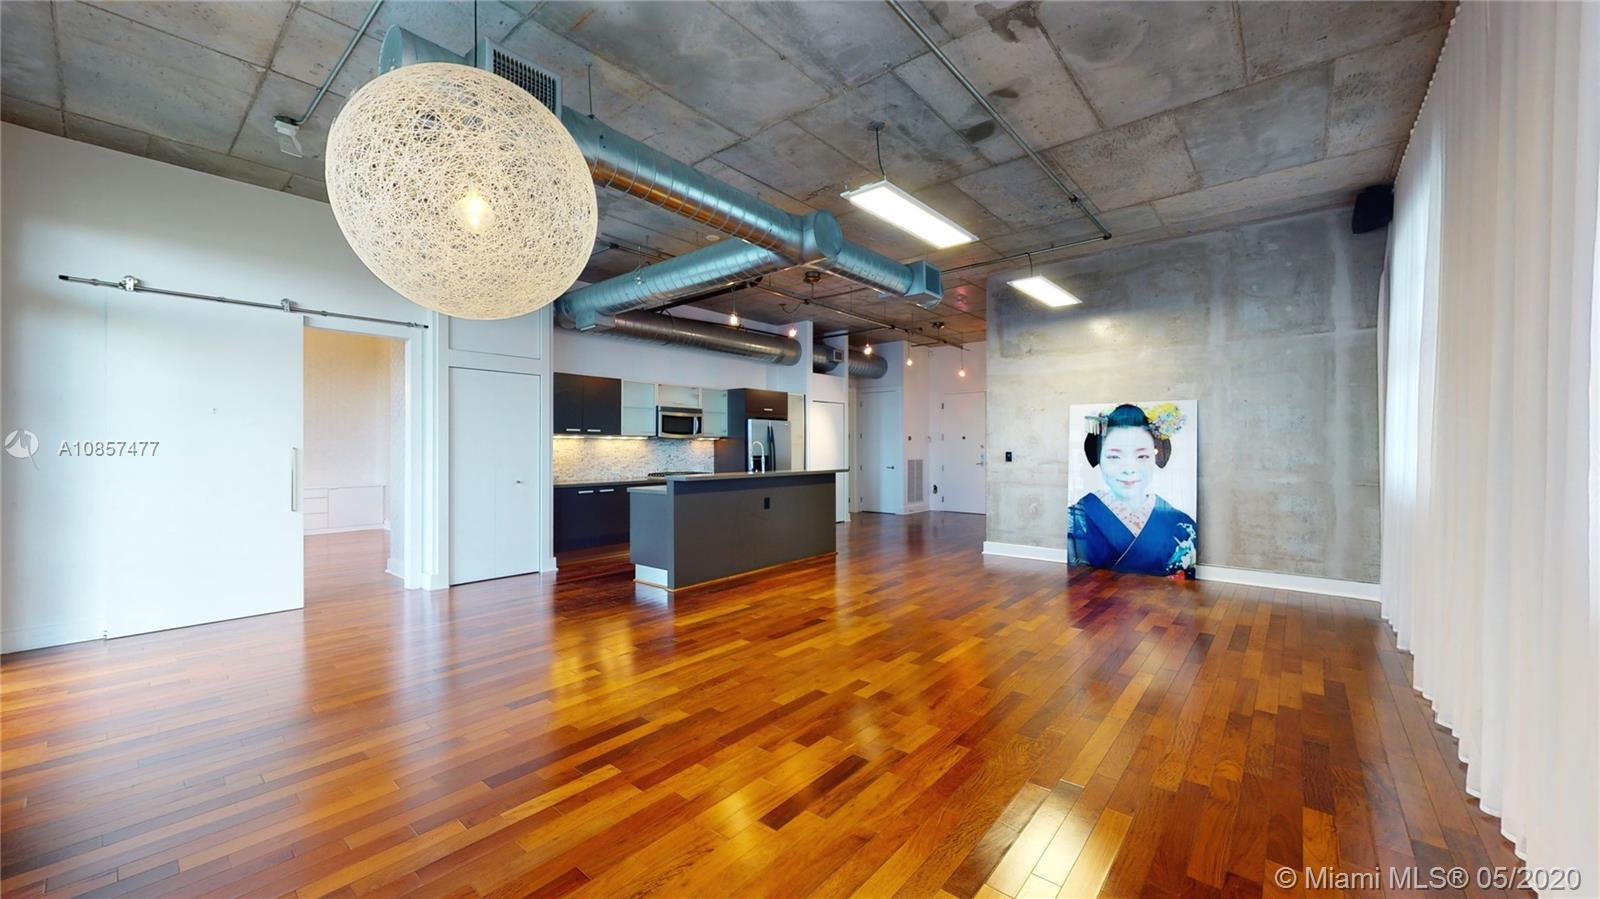 Attention artists & art collectors! Allow us to introduce you to The Mill Lofts, a collection of 34